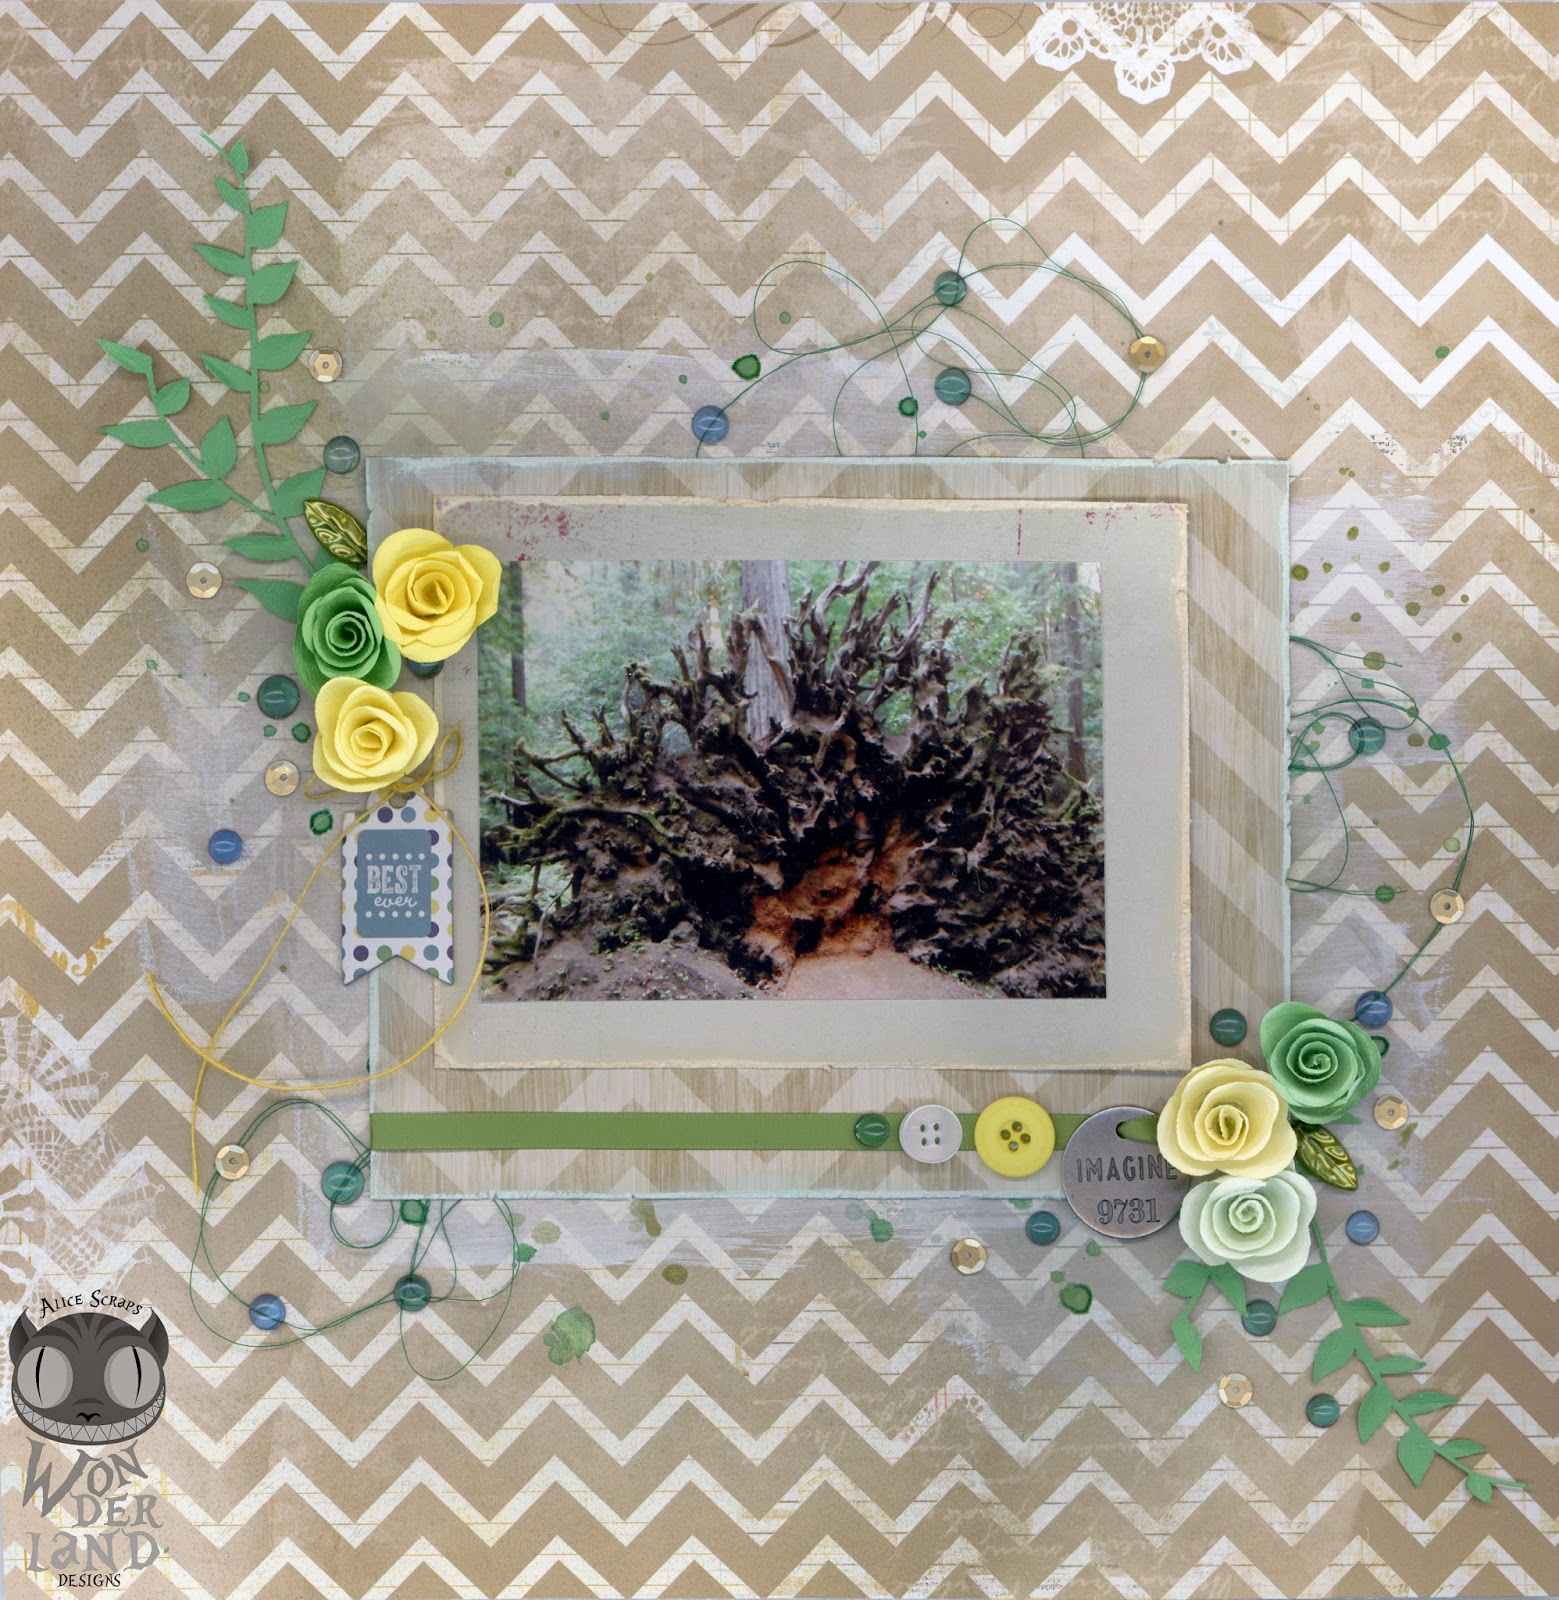 Imagine by Alice Scraps Wonderland:  This dreamy layout is full of soft browns, greens and yellows.  Mixed media and layering add detail without overwhelming the beautiful photo.